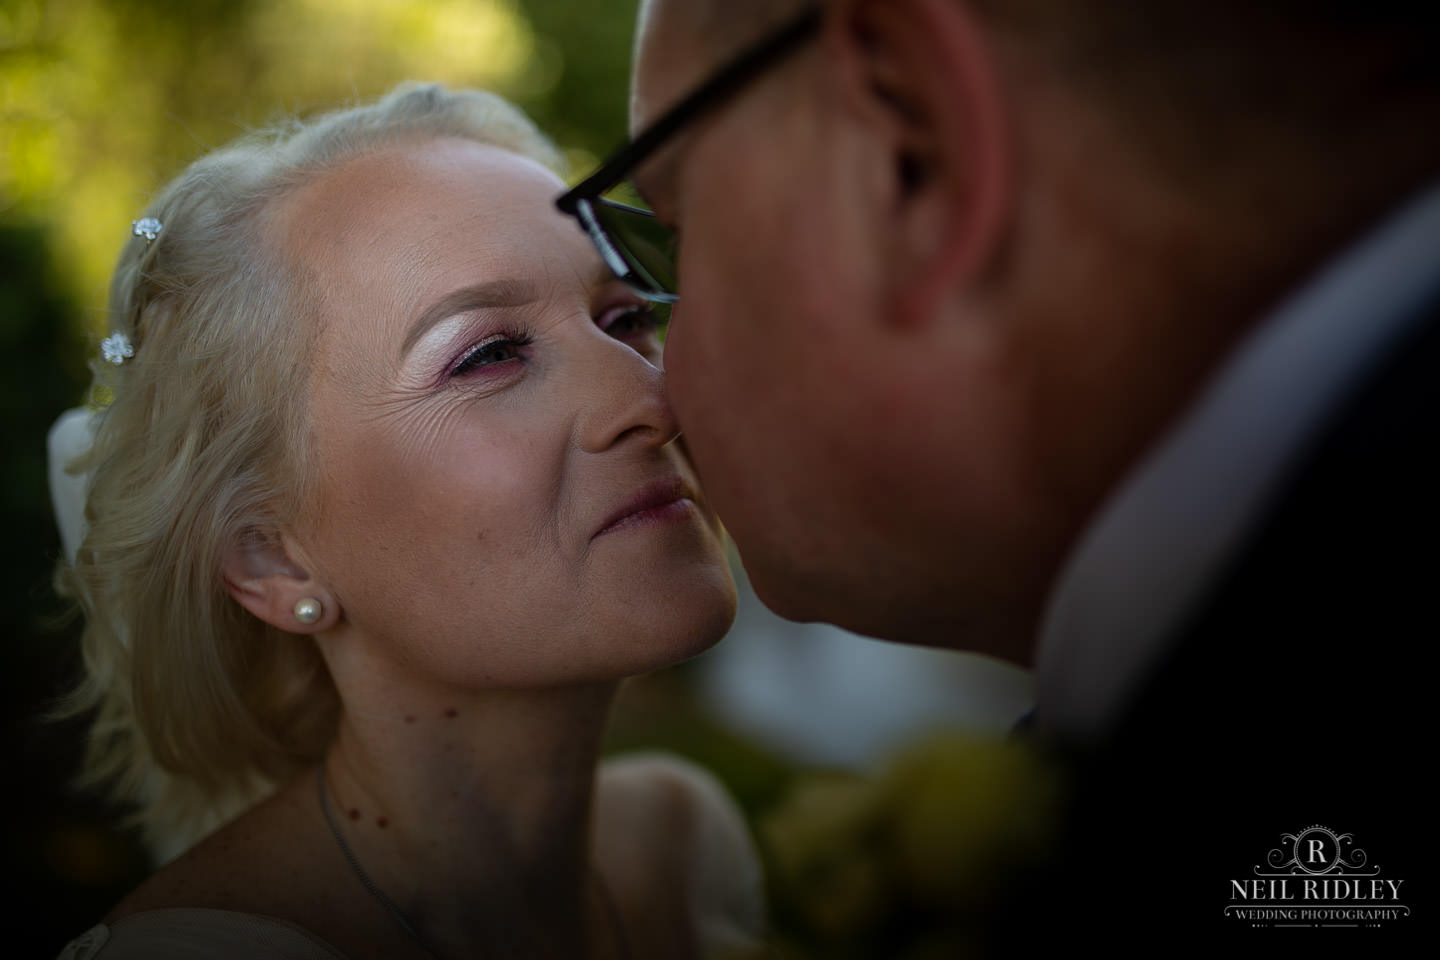 Bride and groom close up at Maccdonald Portal Spa and Hotel